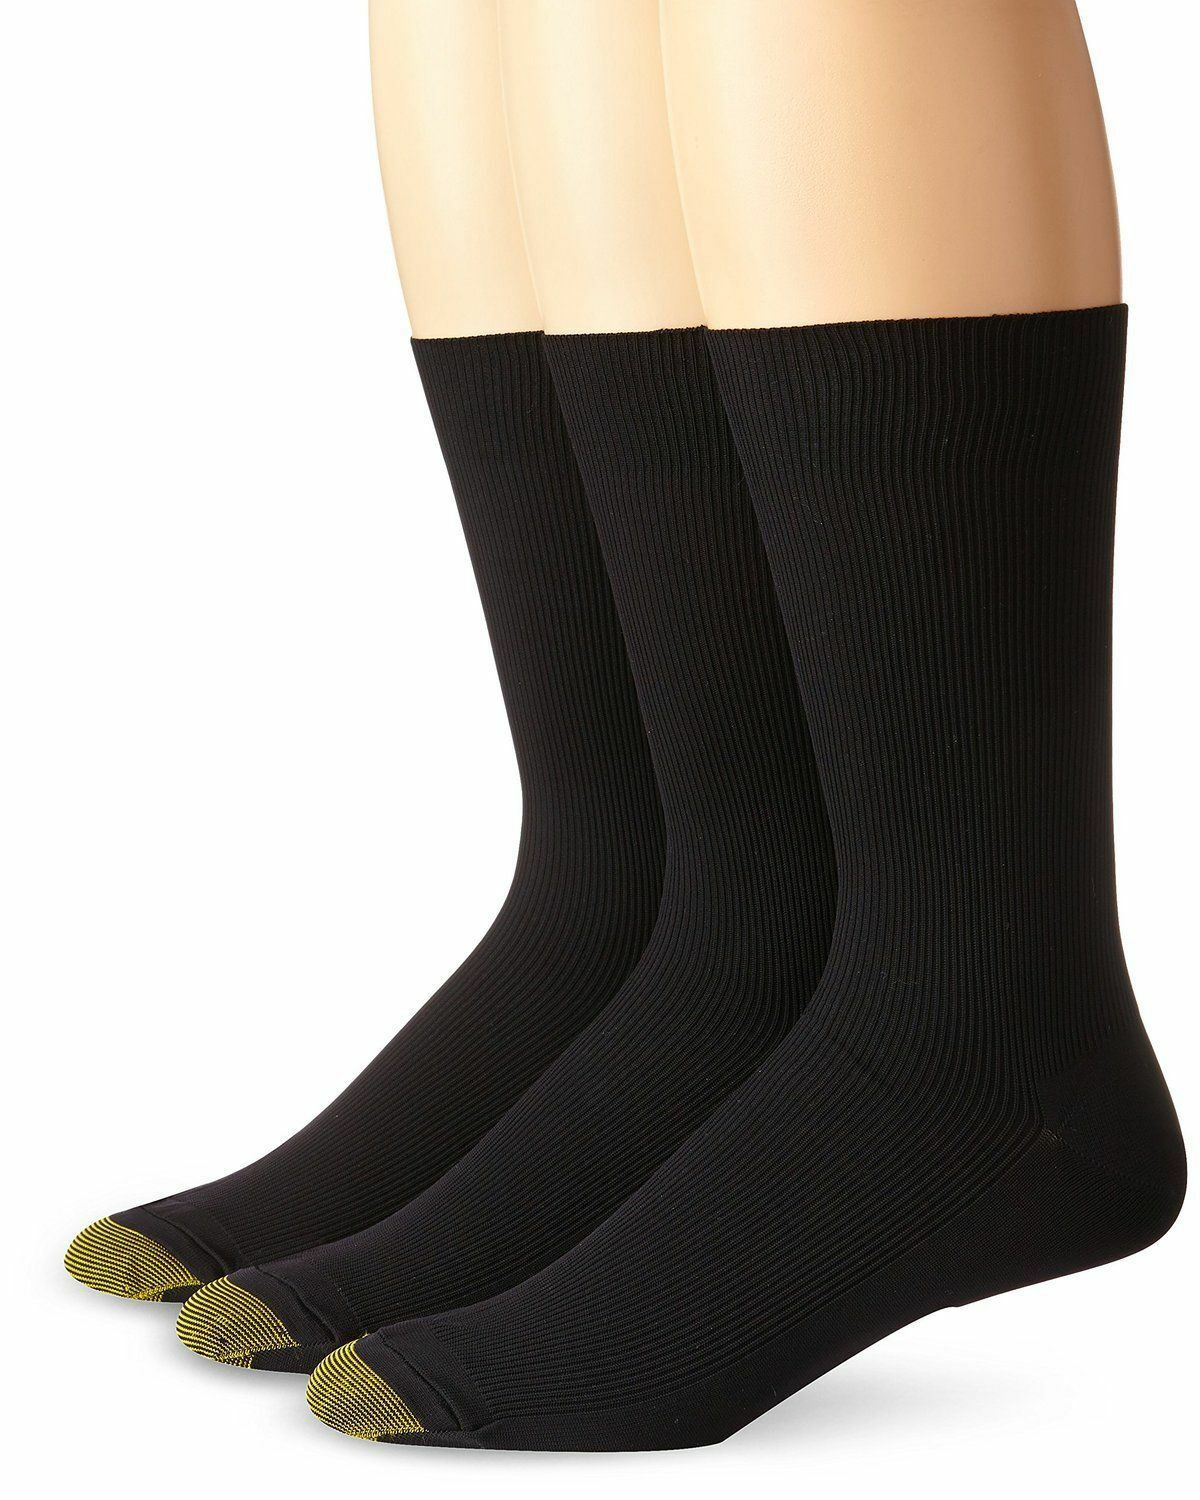 $45 GOLD TOE Mens BLACK CREW METROPOLITAN DRESS CASUAL SOCKS 3 PACK SHOE 6-12